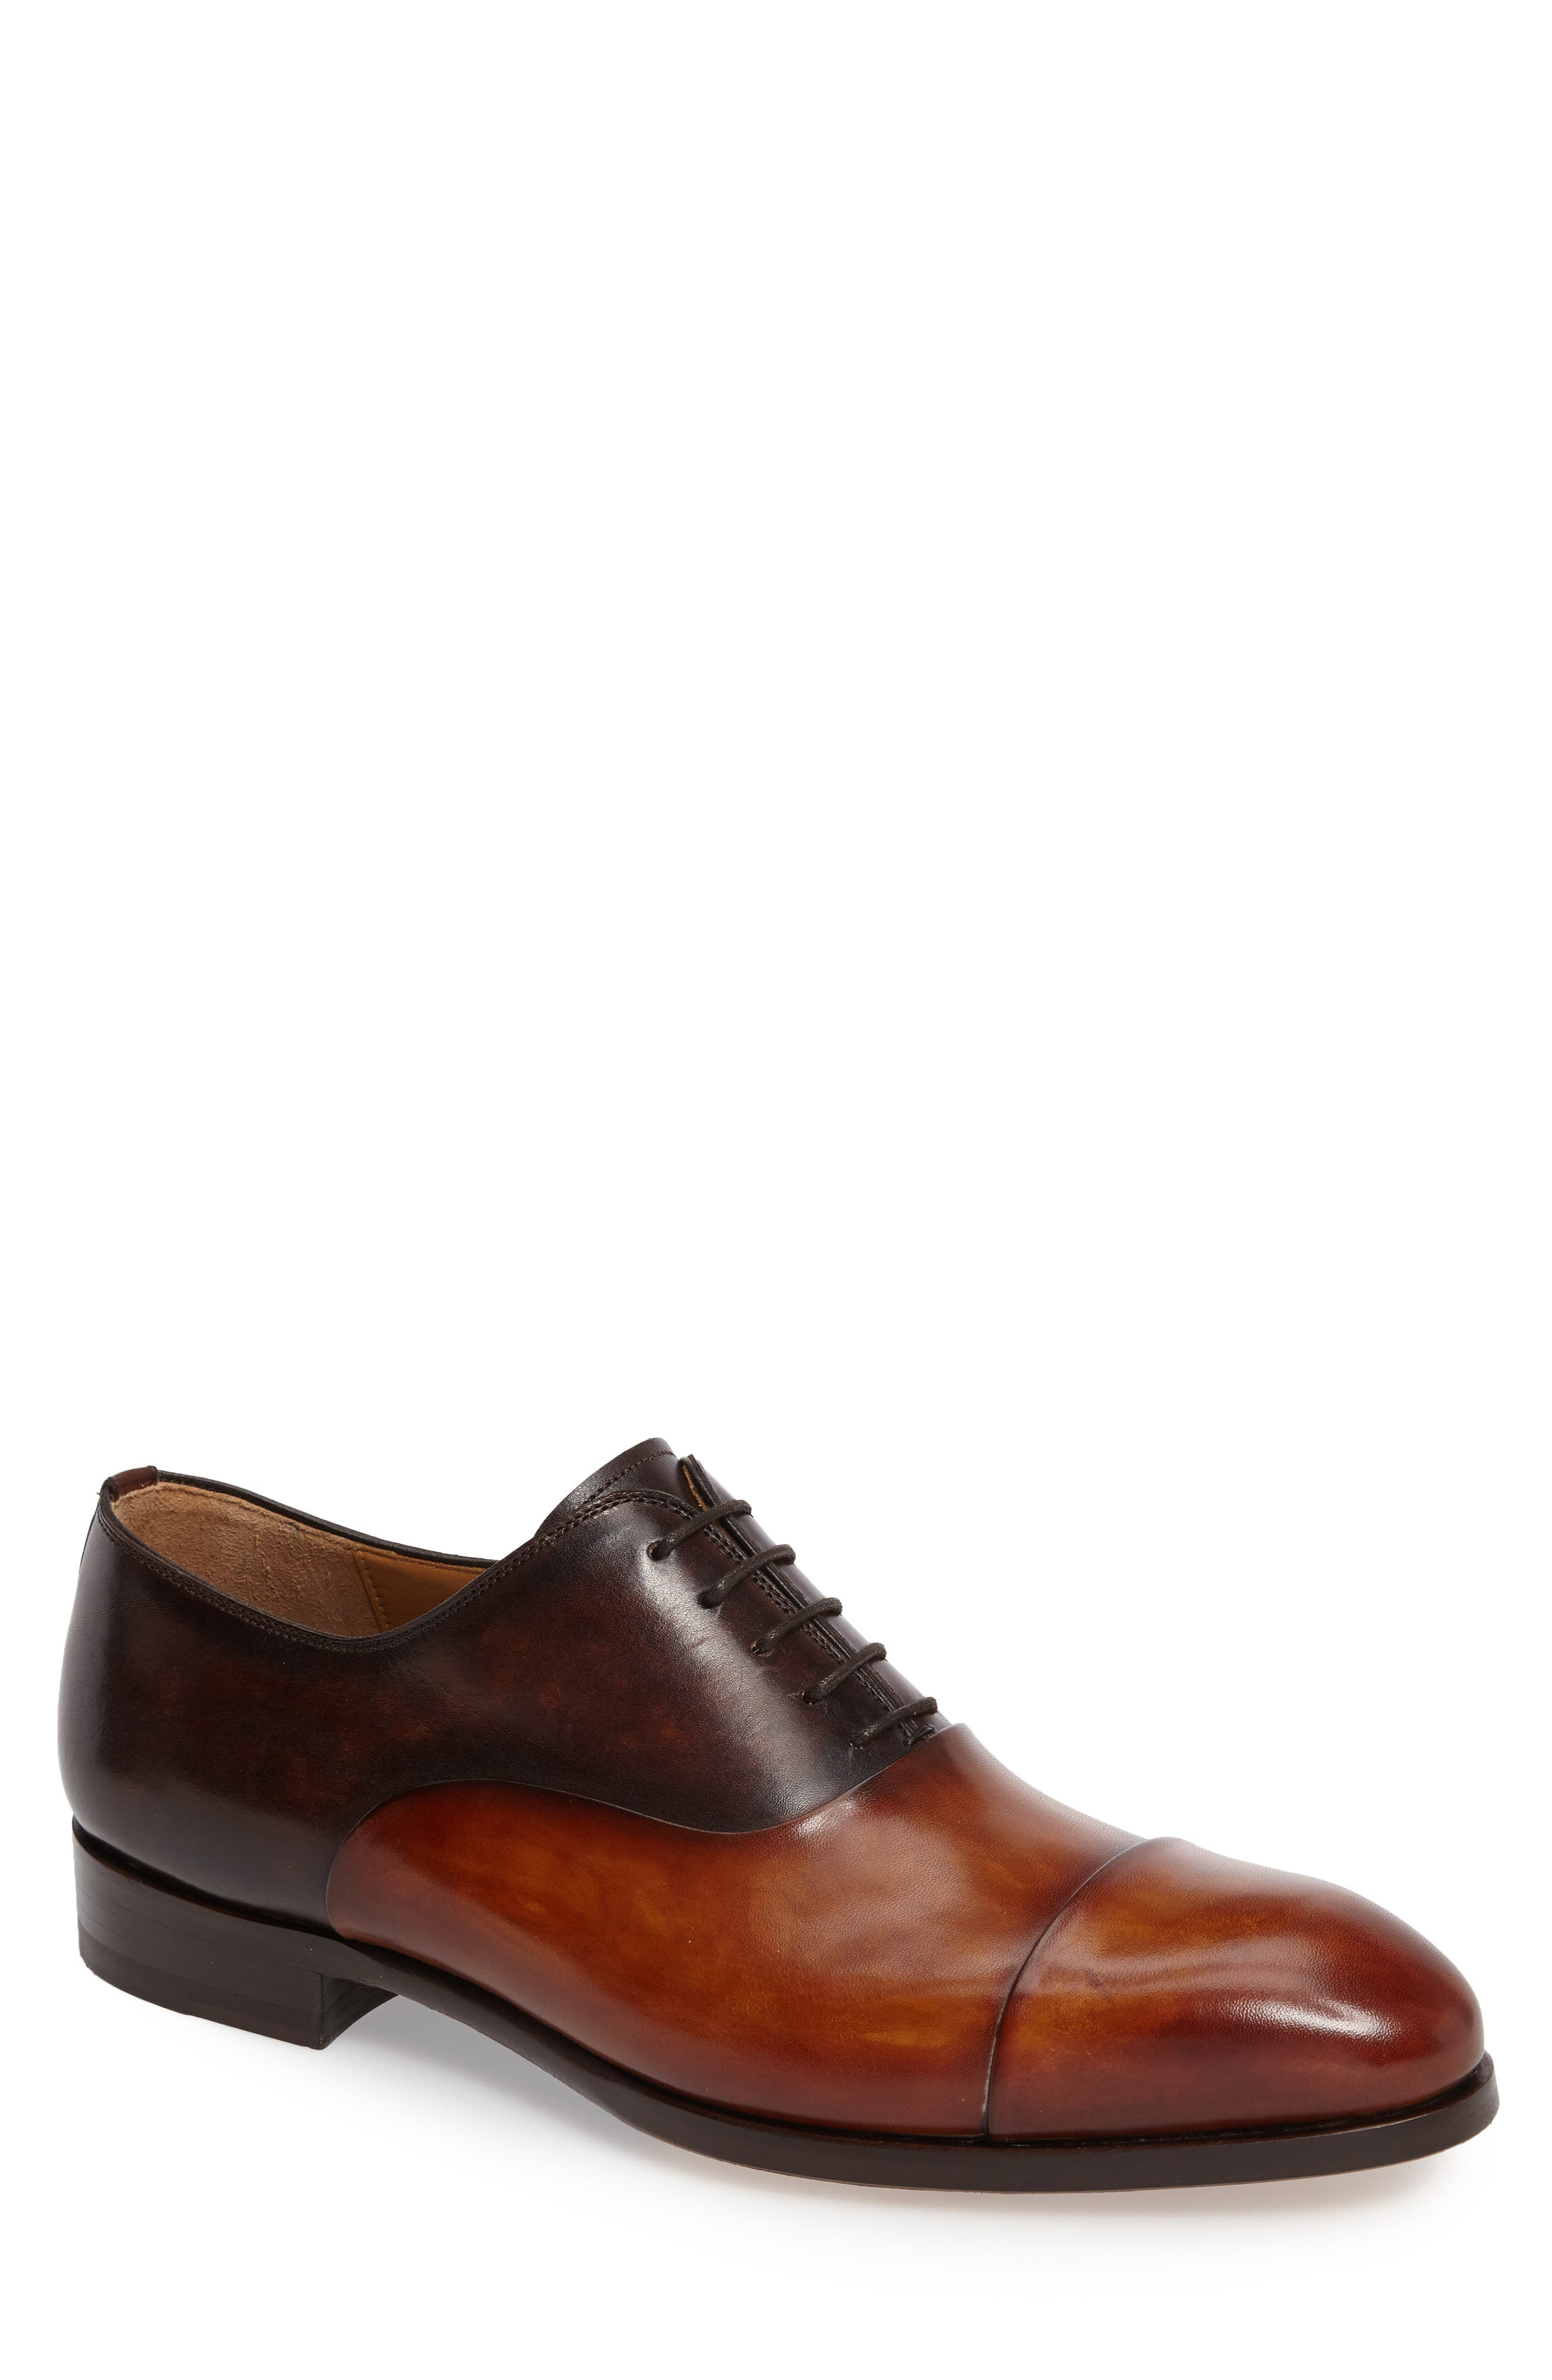 Golay Cap Toe Oxford,                         Main,                         color, CUERO LEATHER